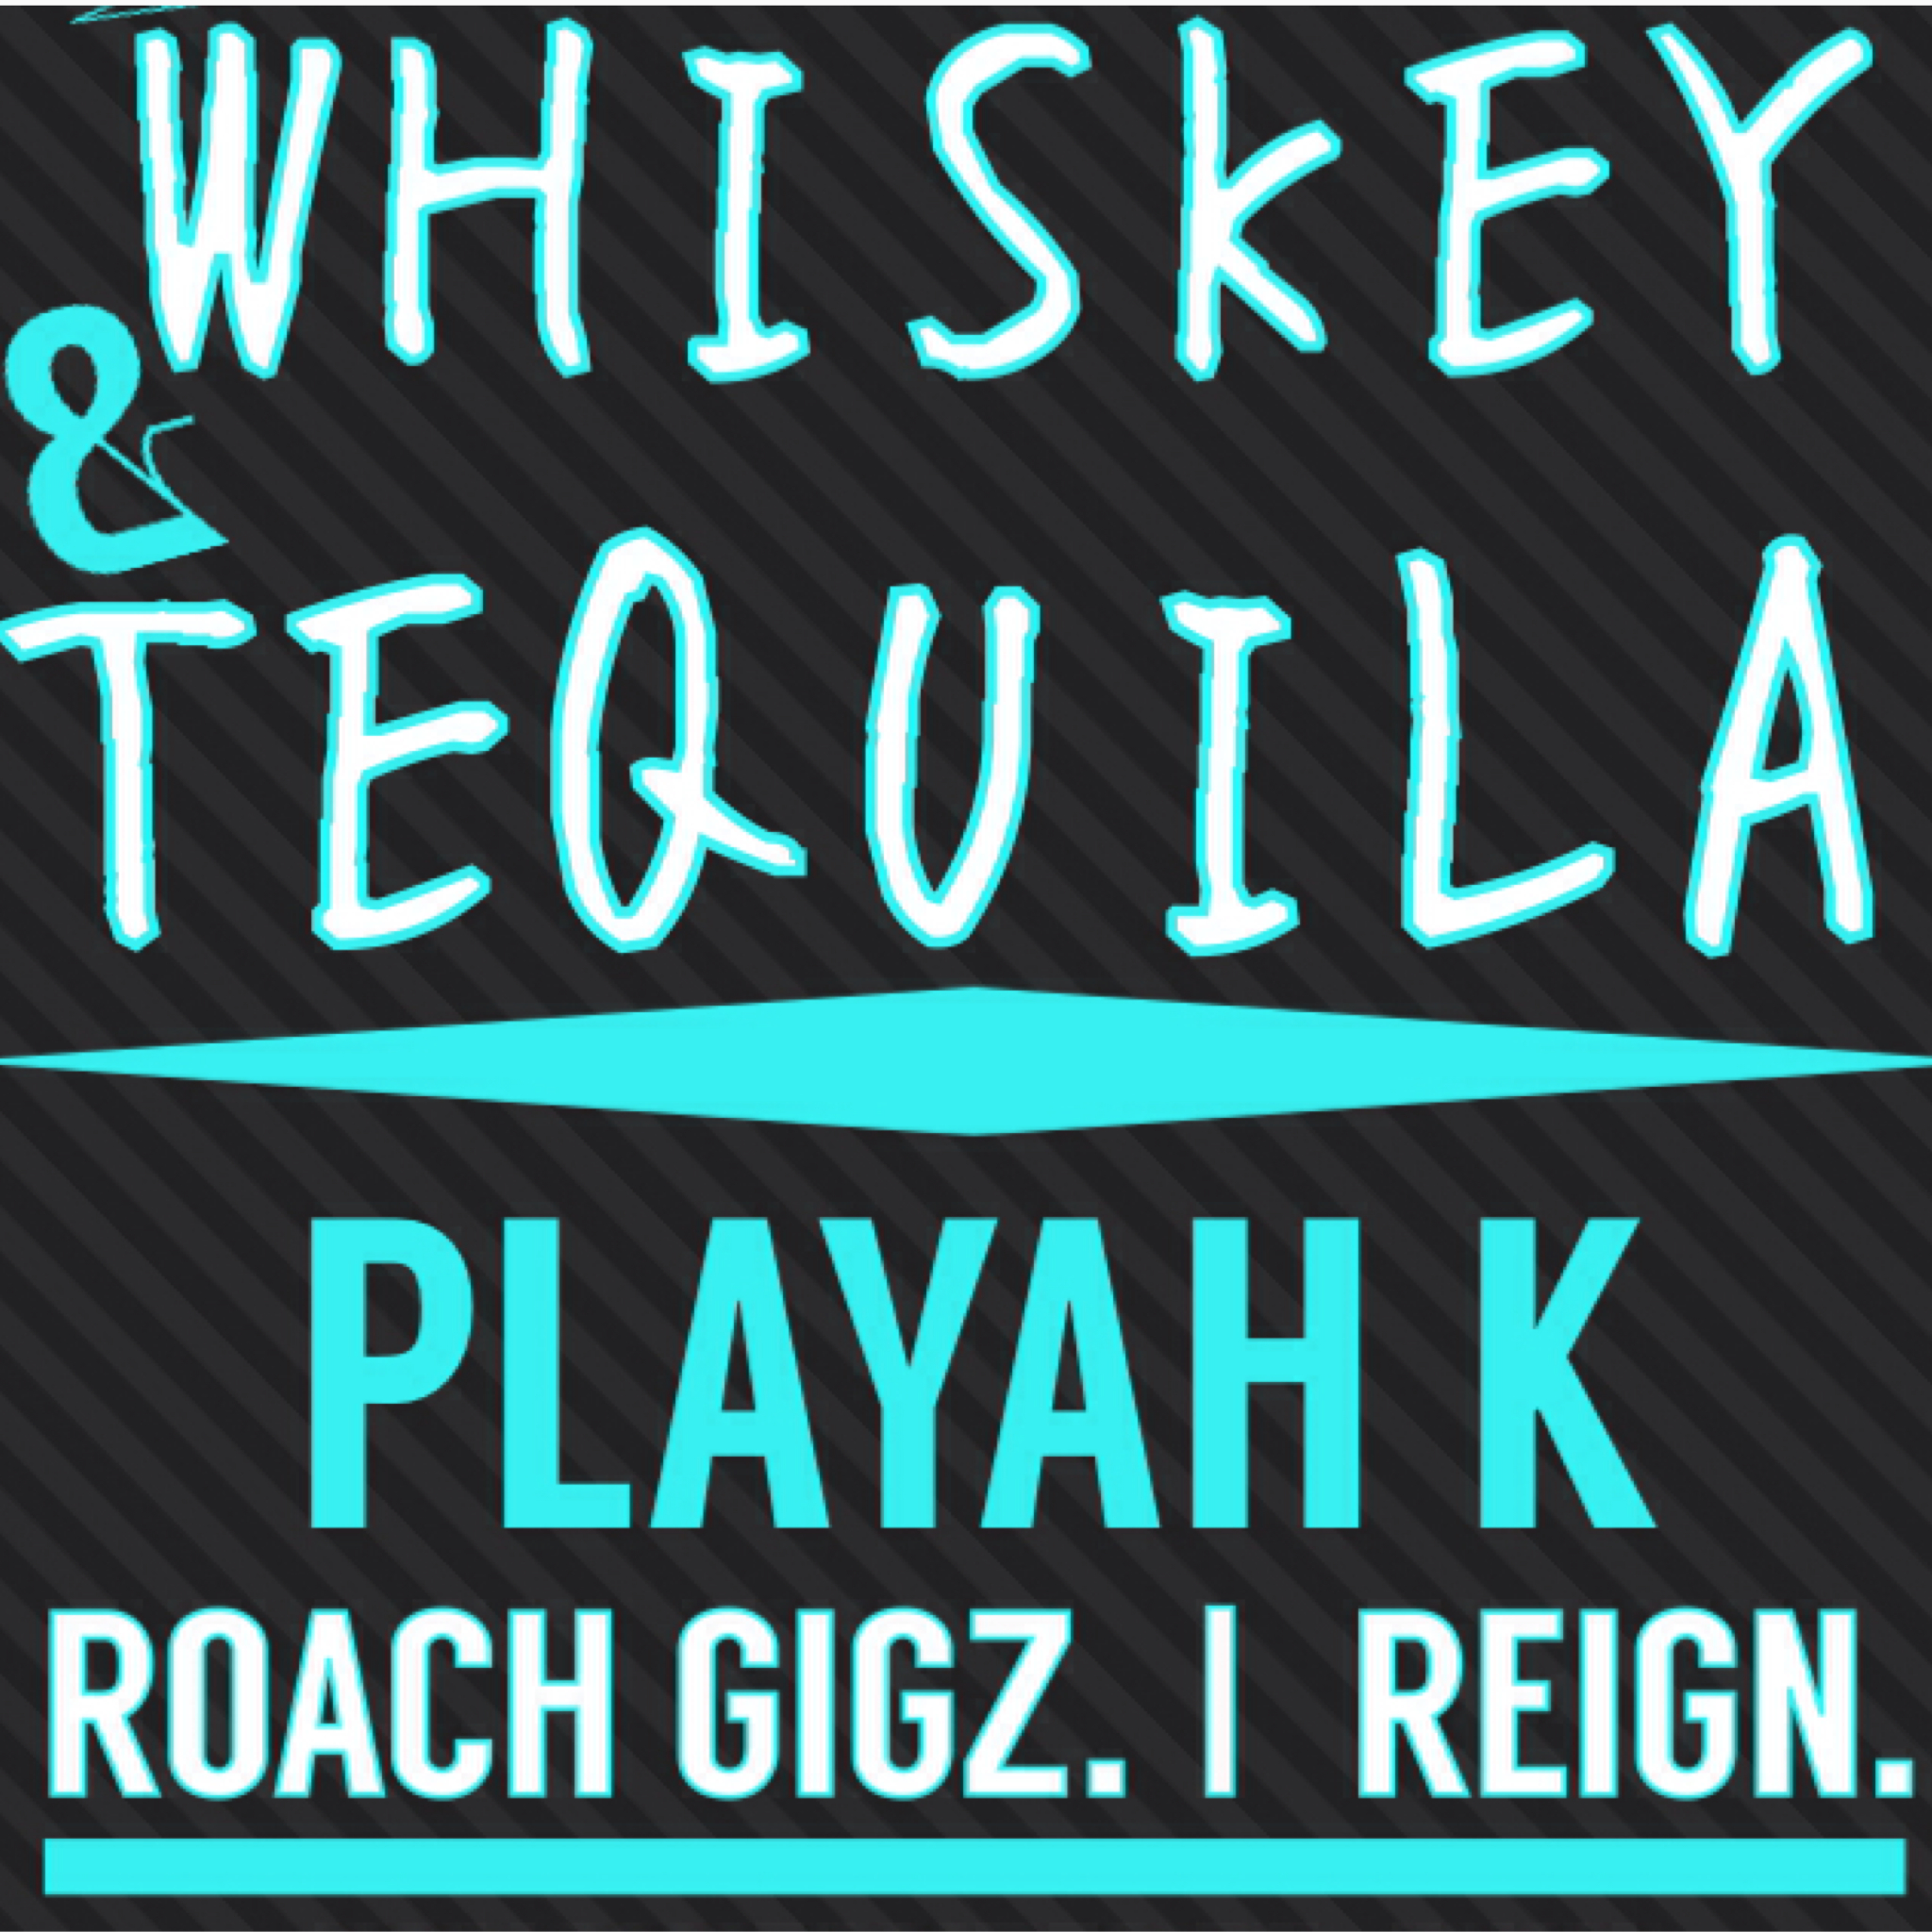 Playah K ft. Roach Gigz & Reign - Whiskey & Tequila [Thizzler.com Exclusive]